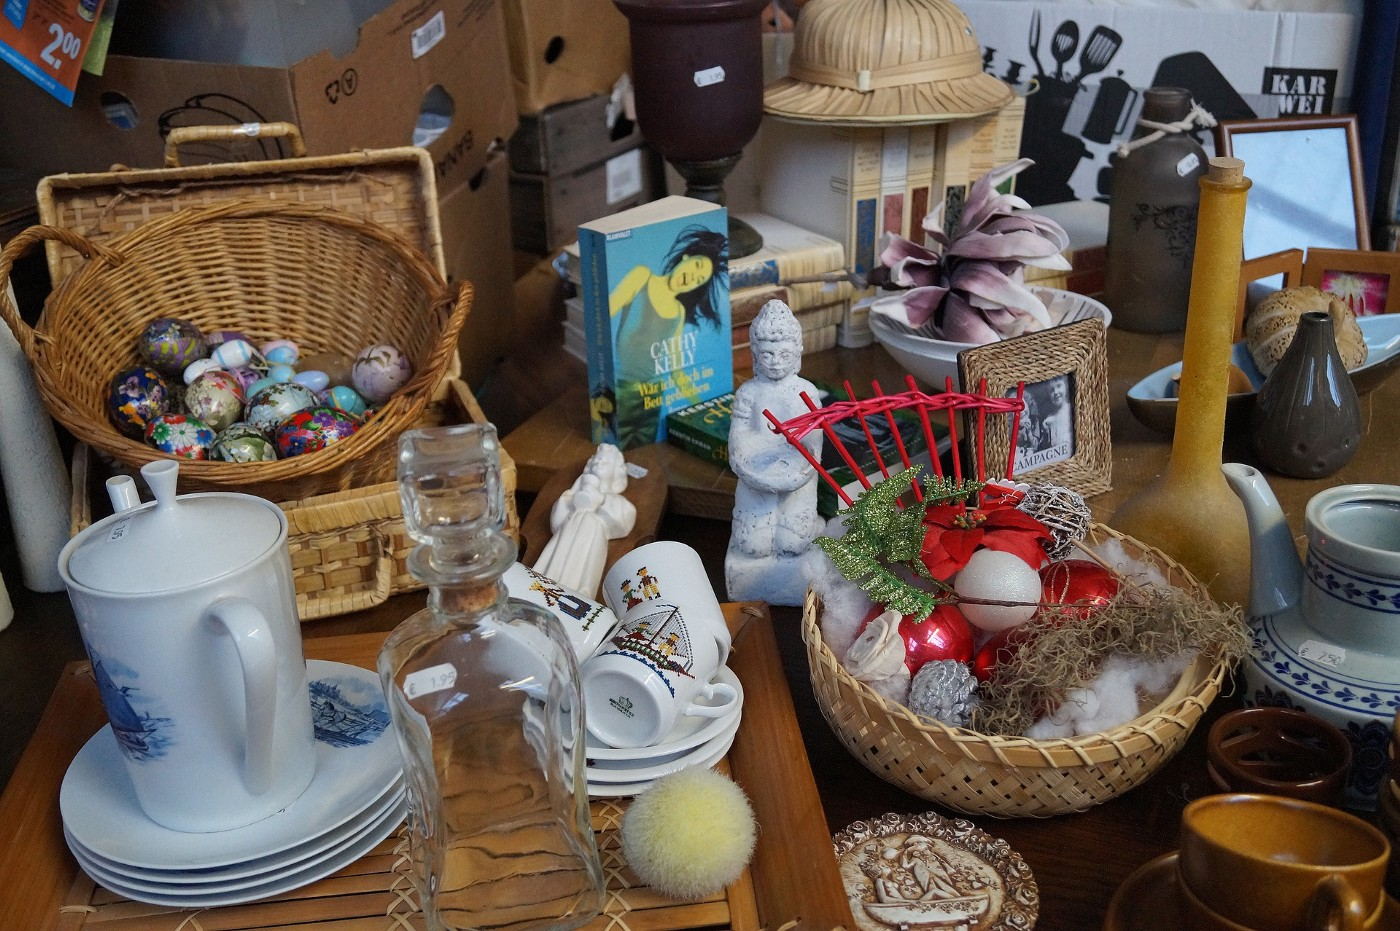 A display of mini cups and saucers, painted eggs and bric-a-brac.